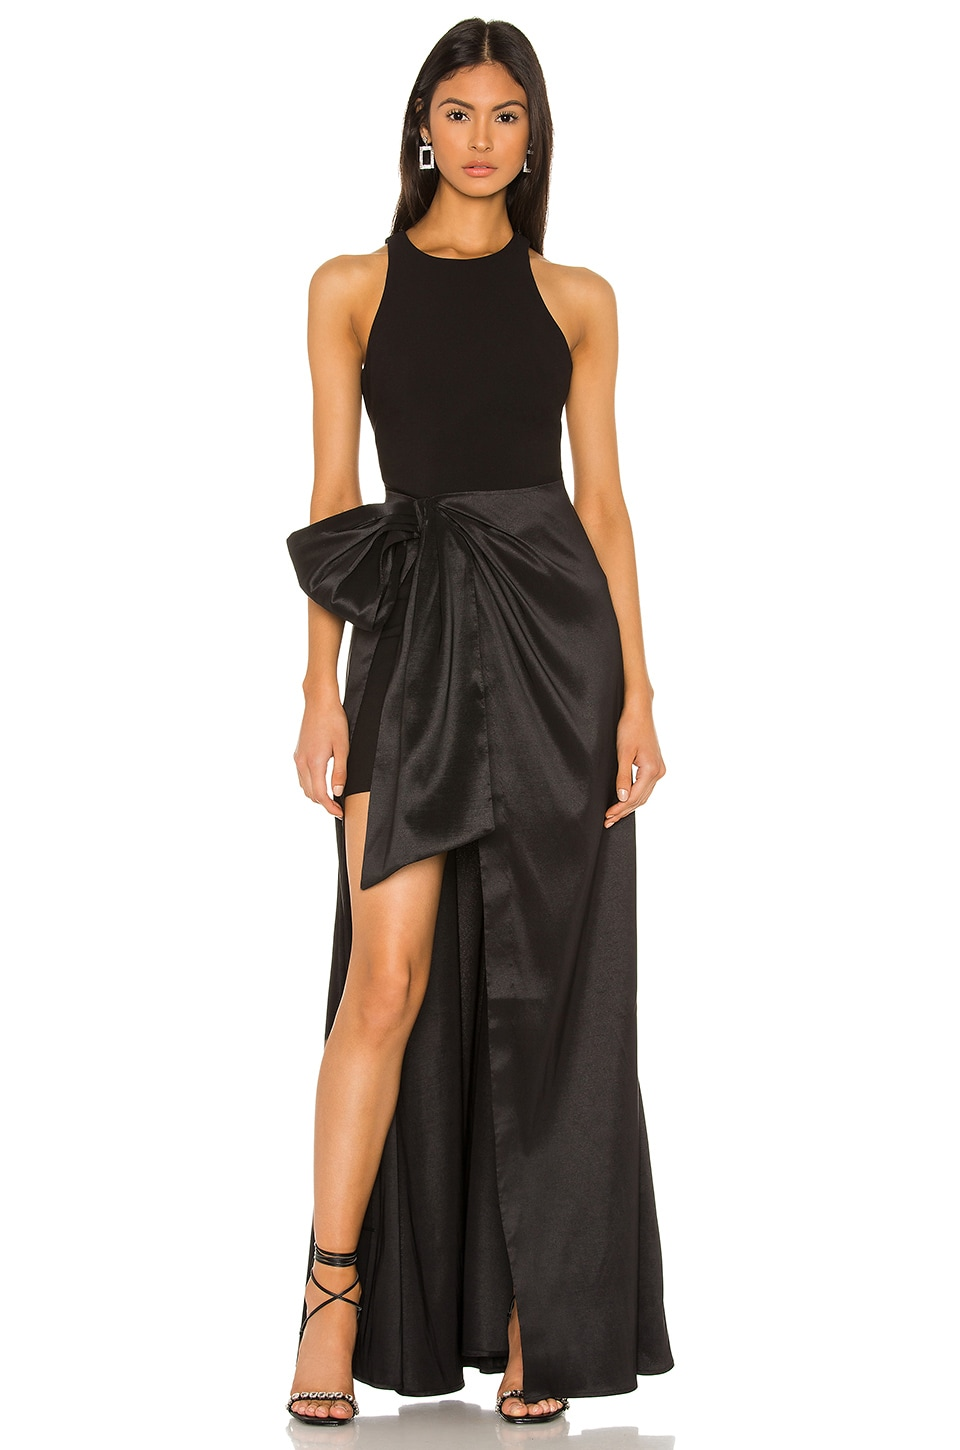 Mena Gown                   LIKELY                                                                                                                             CA$ 455.10 2